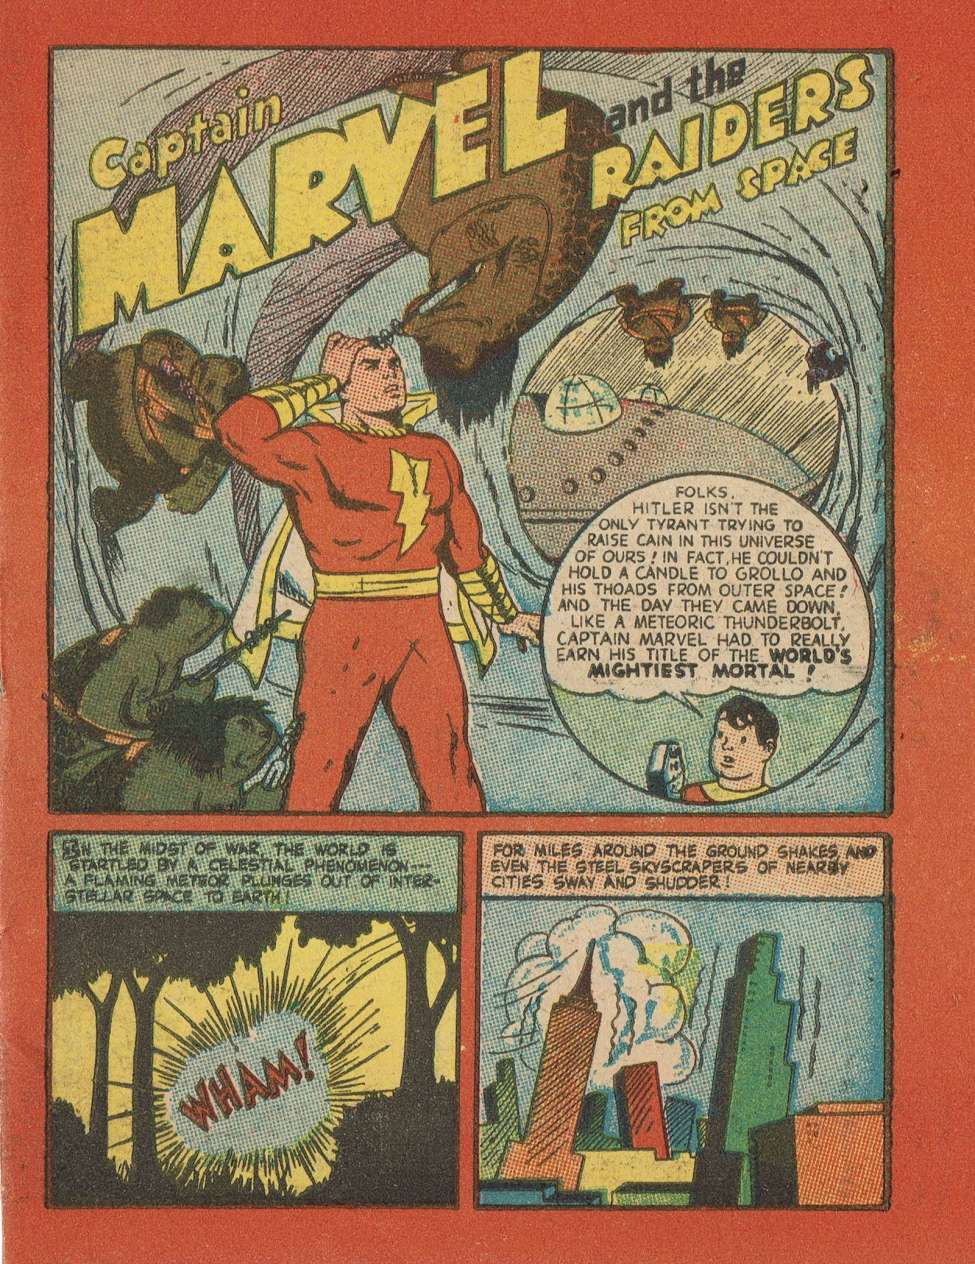 Captain Marvel and the Raiders from Space